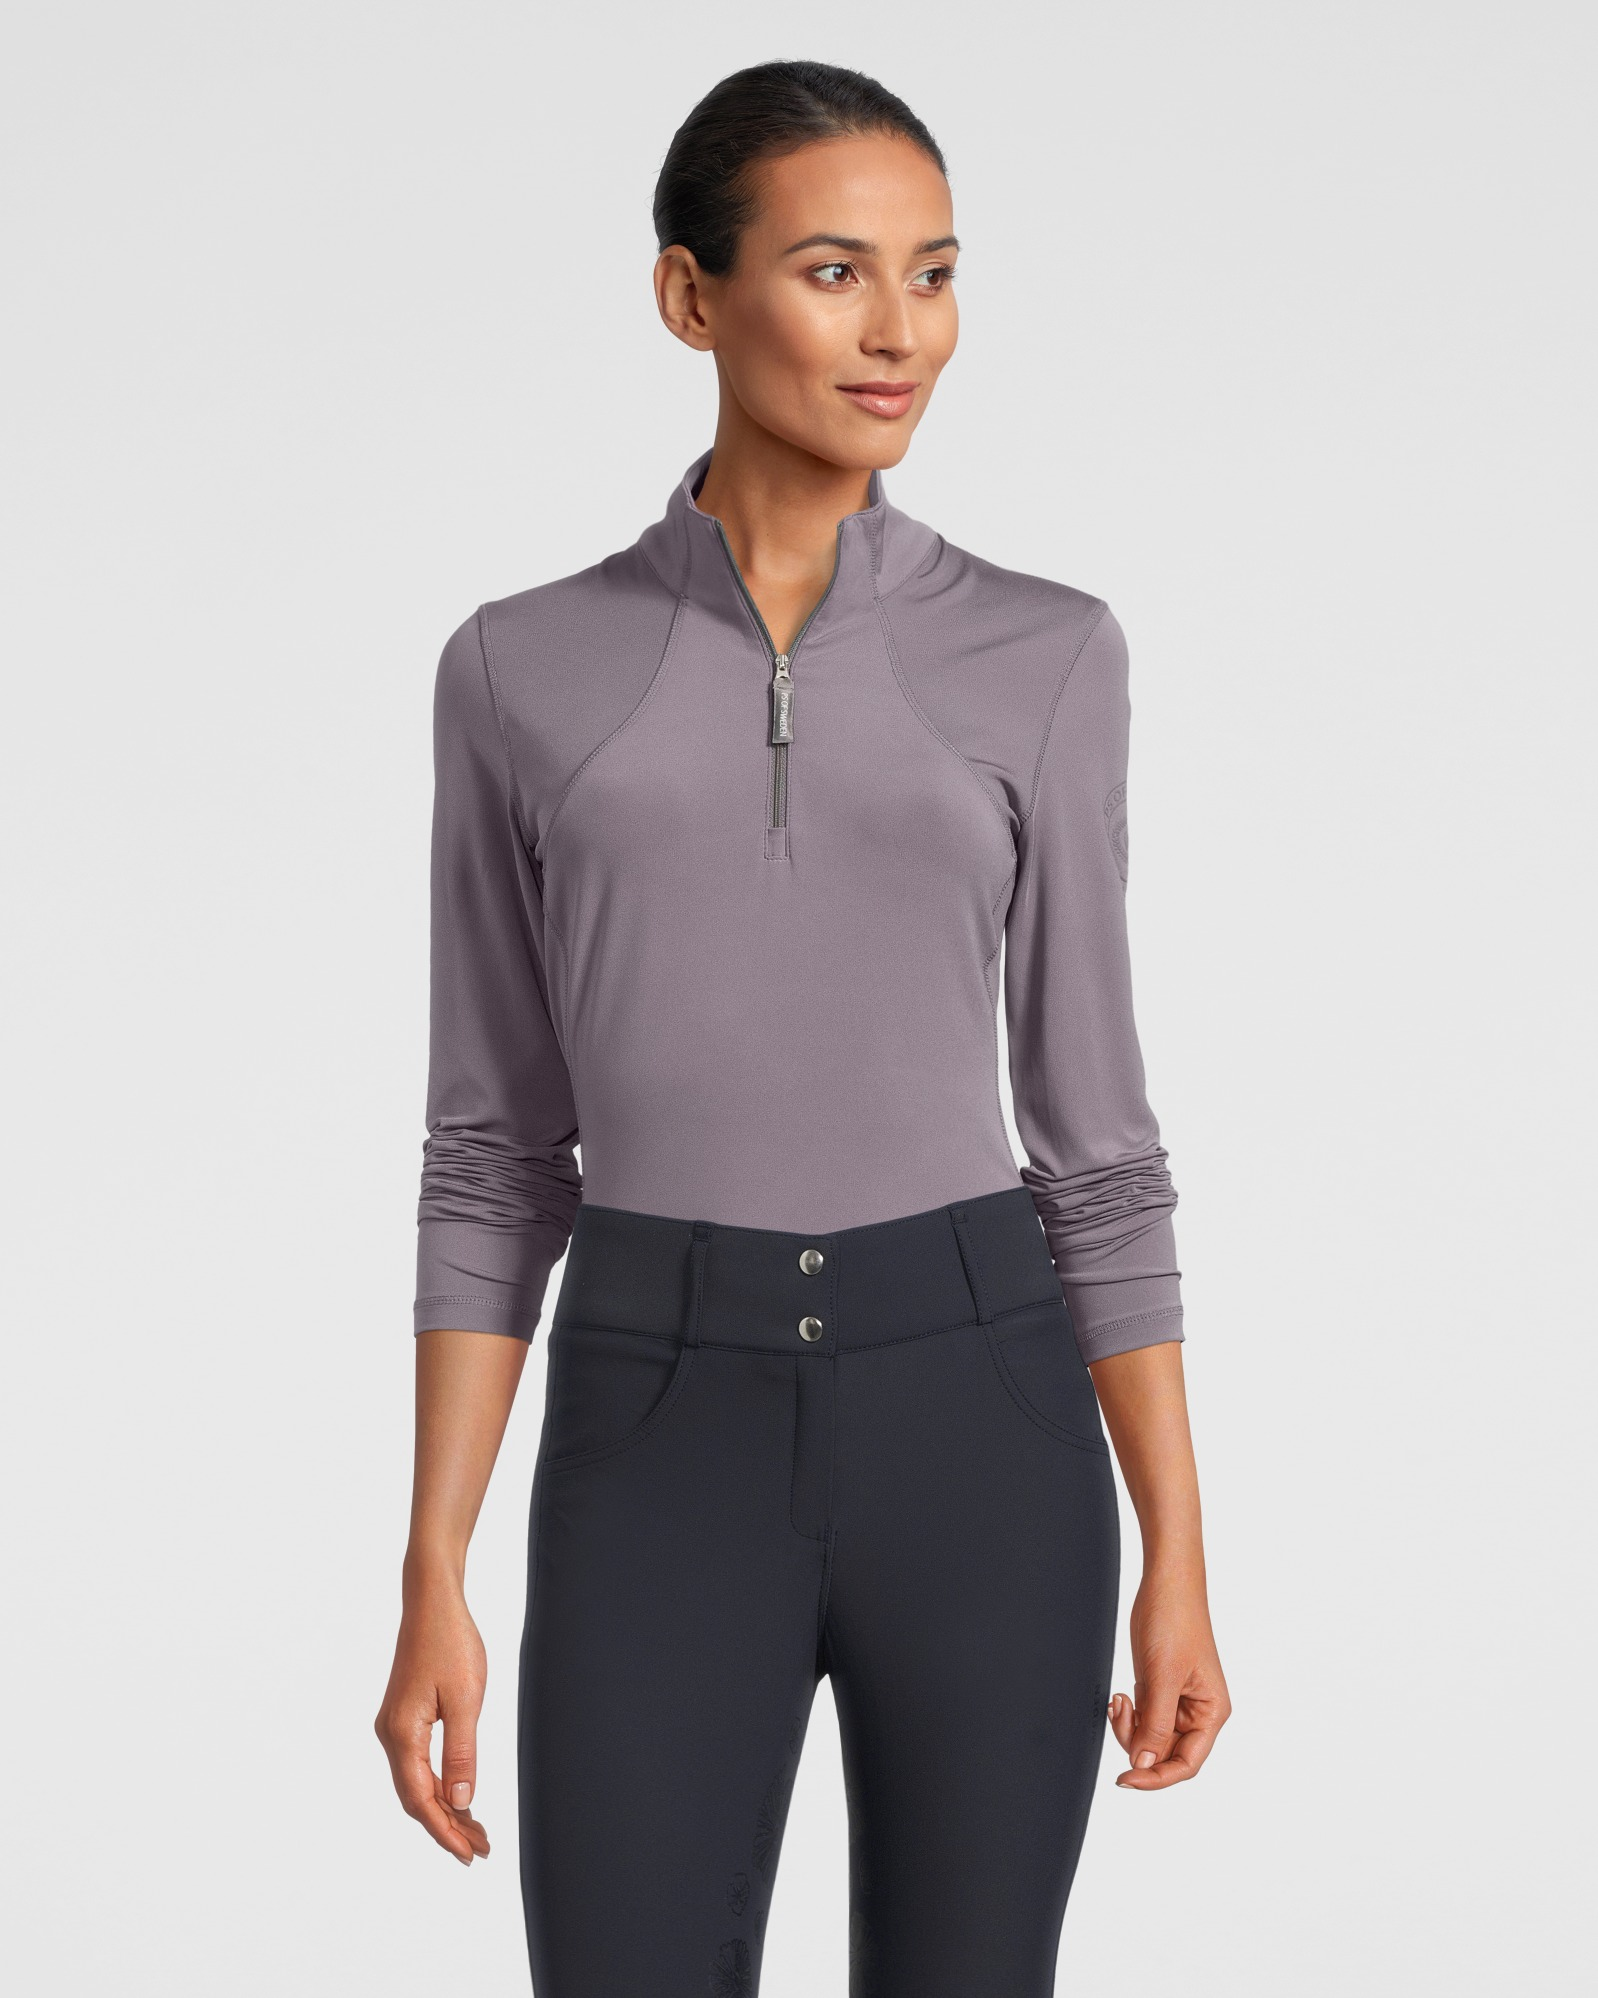 PS of Sweden Alessandra Base Layer in grey